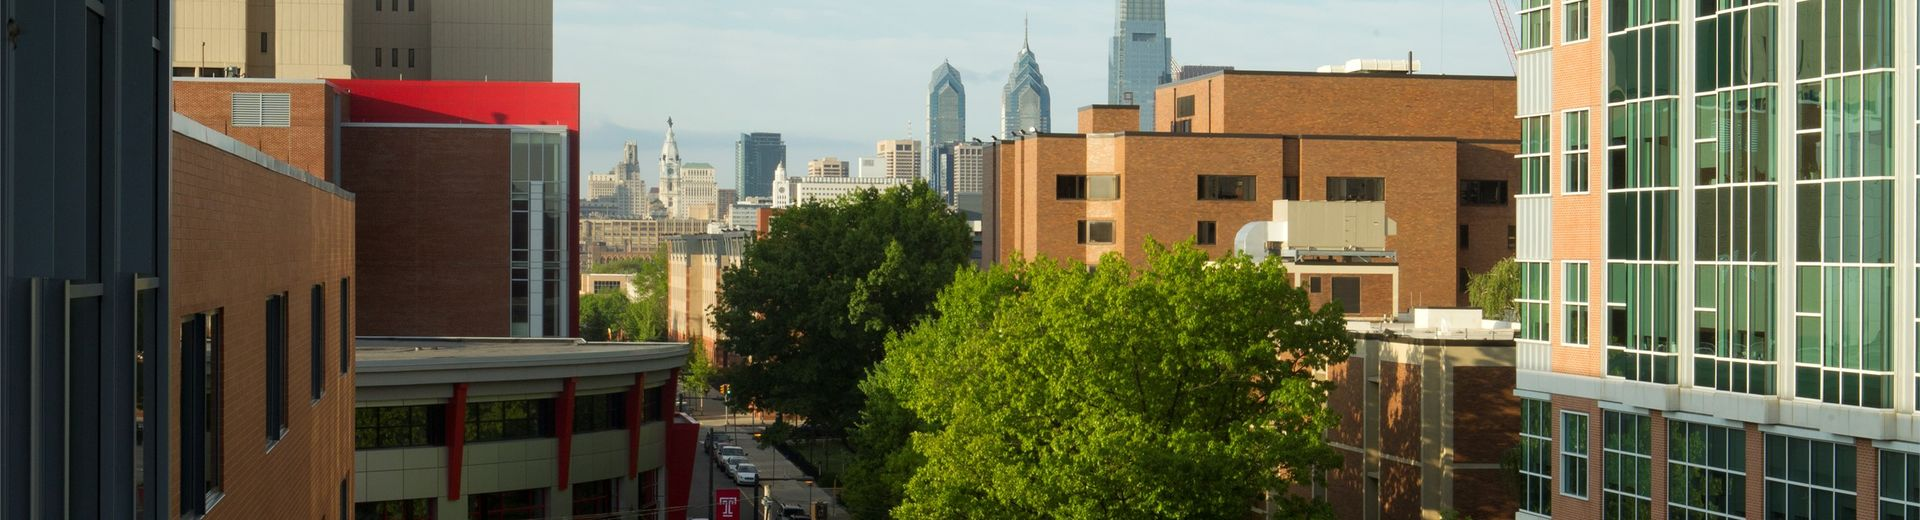 The Temple University campus at dawn with the Center City skyline in the background